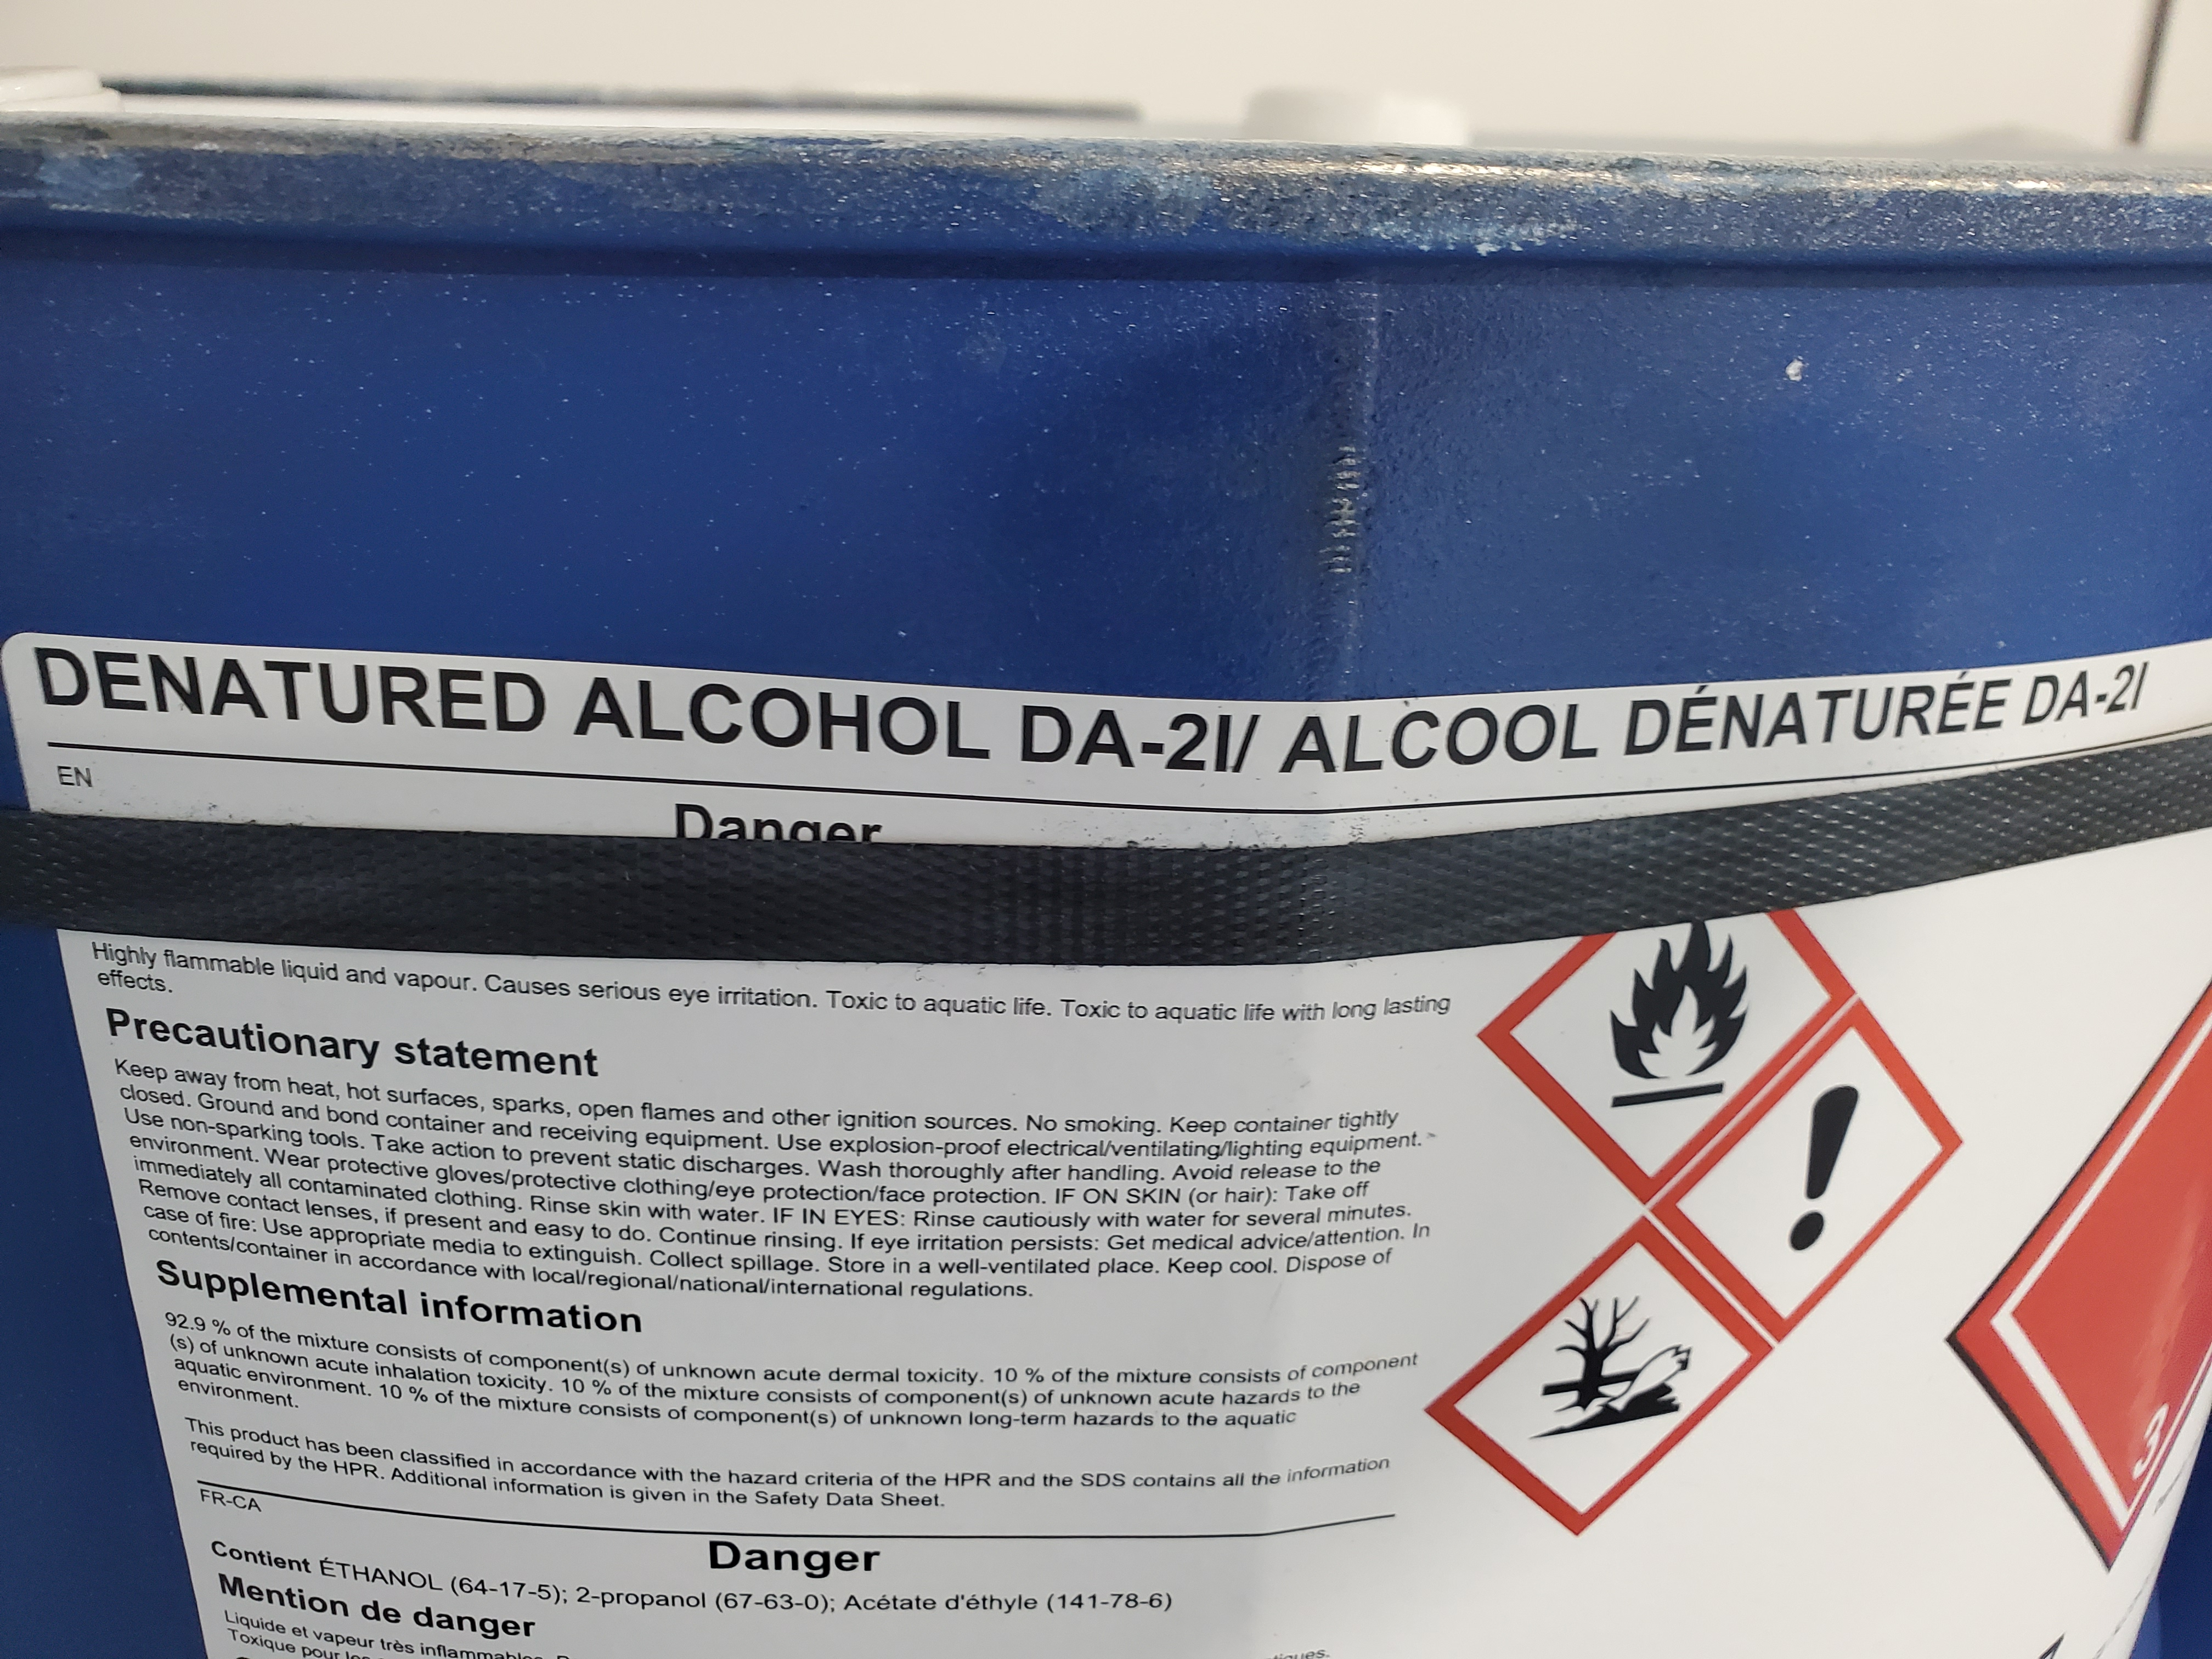 Package F - 8 Drums Denatured Alcohol DA-2I, New, Fresh, will include COA Location B1, Must be